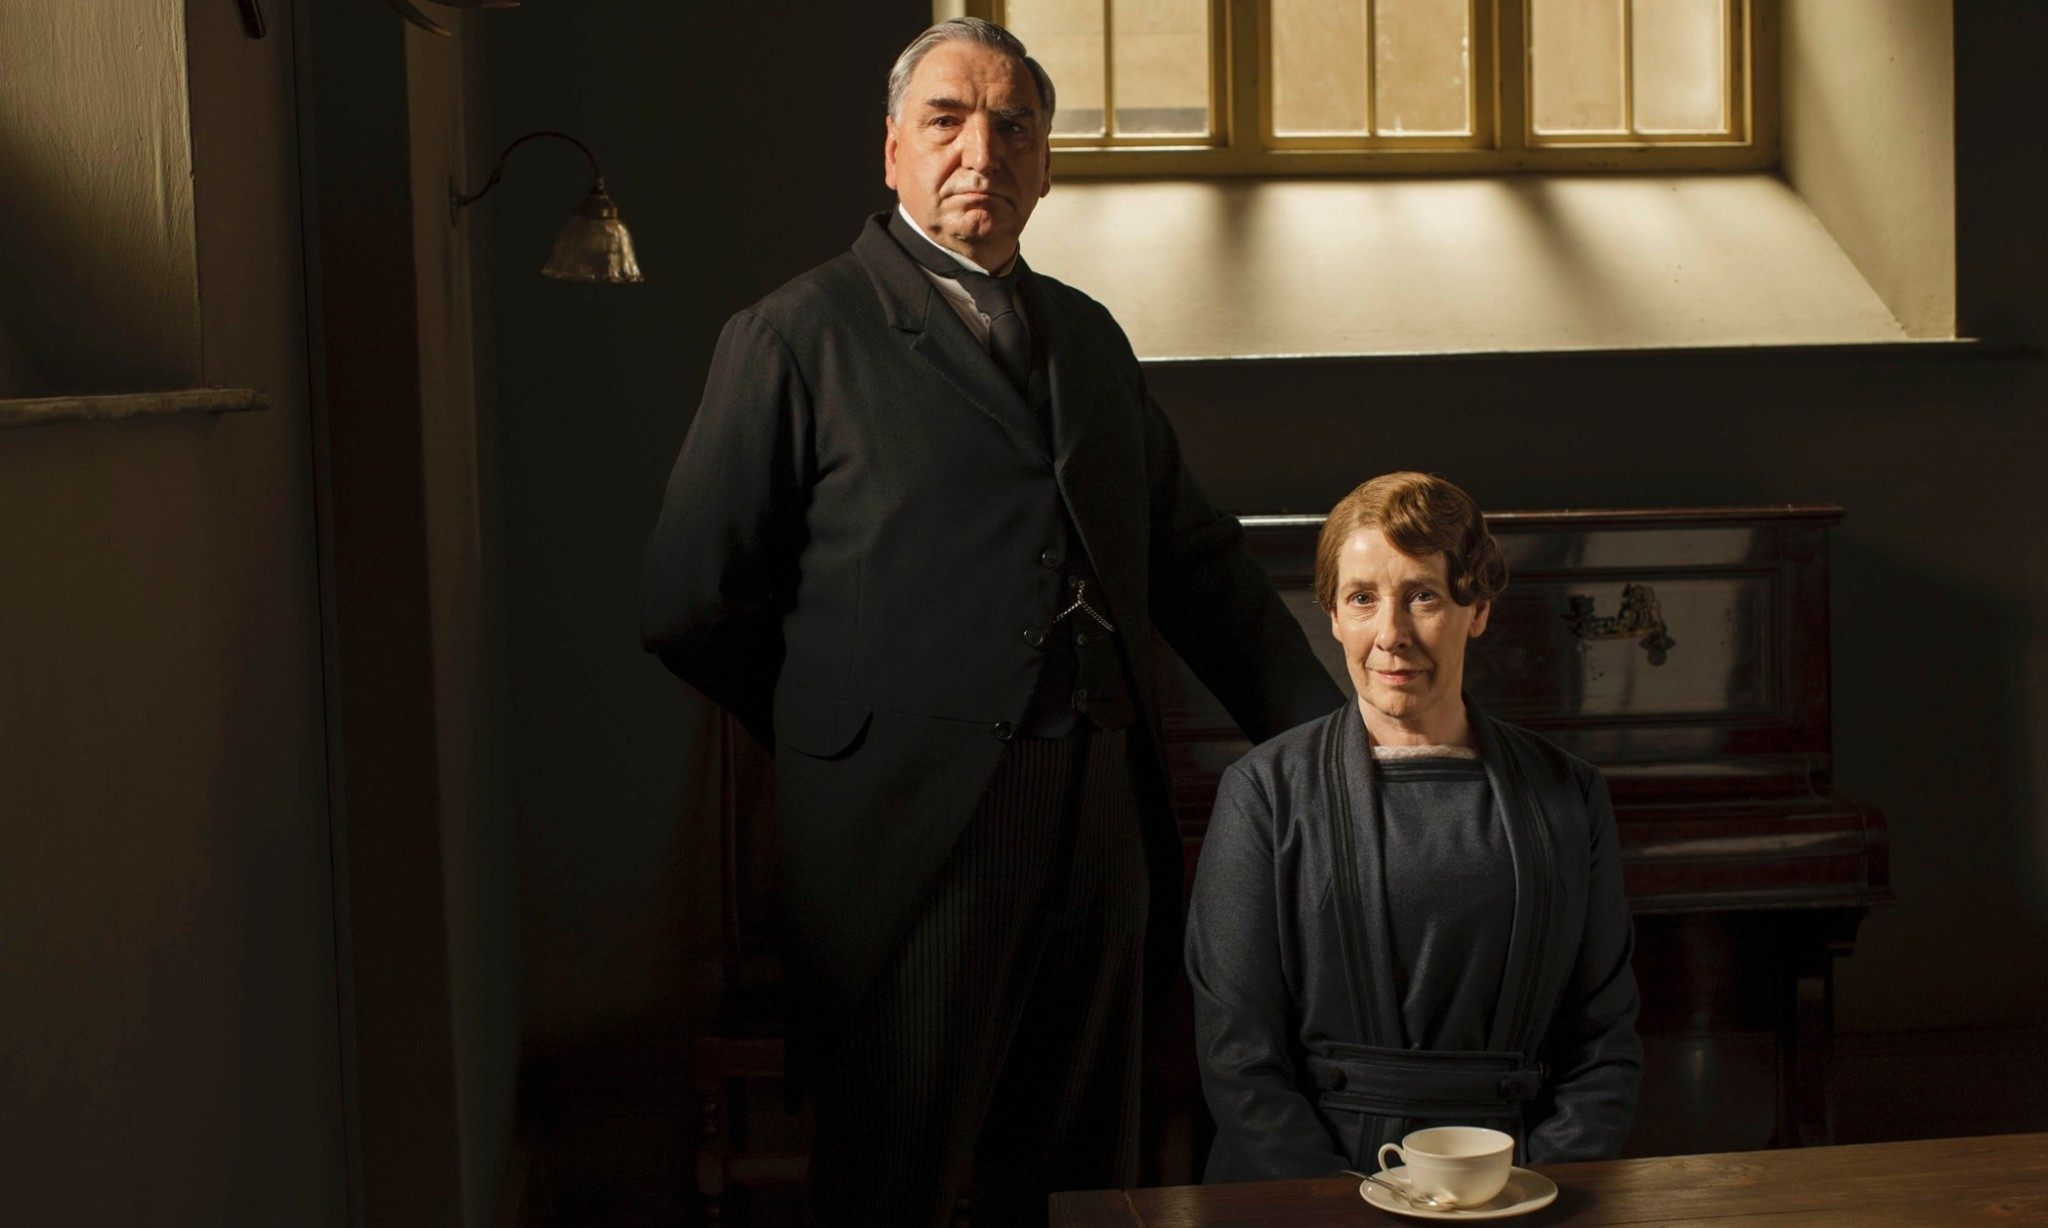 How to survive Downton Abbey: a guide for American viewers